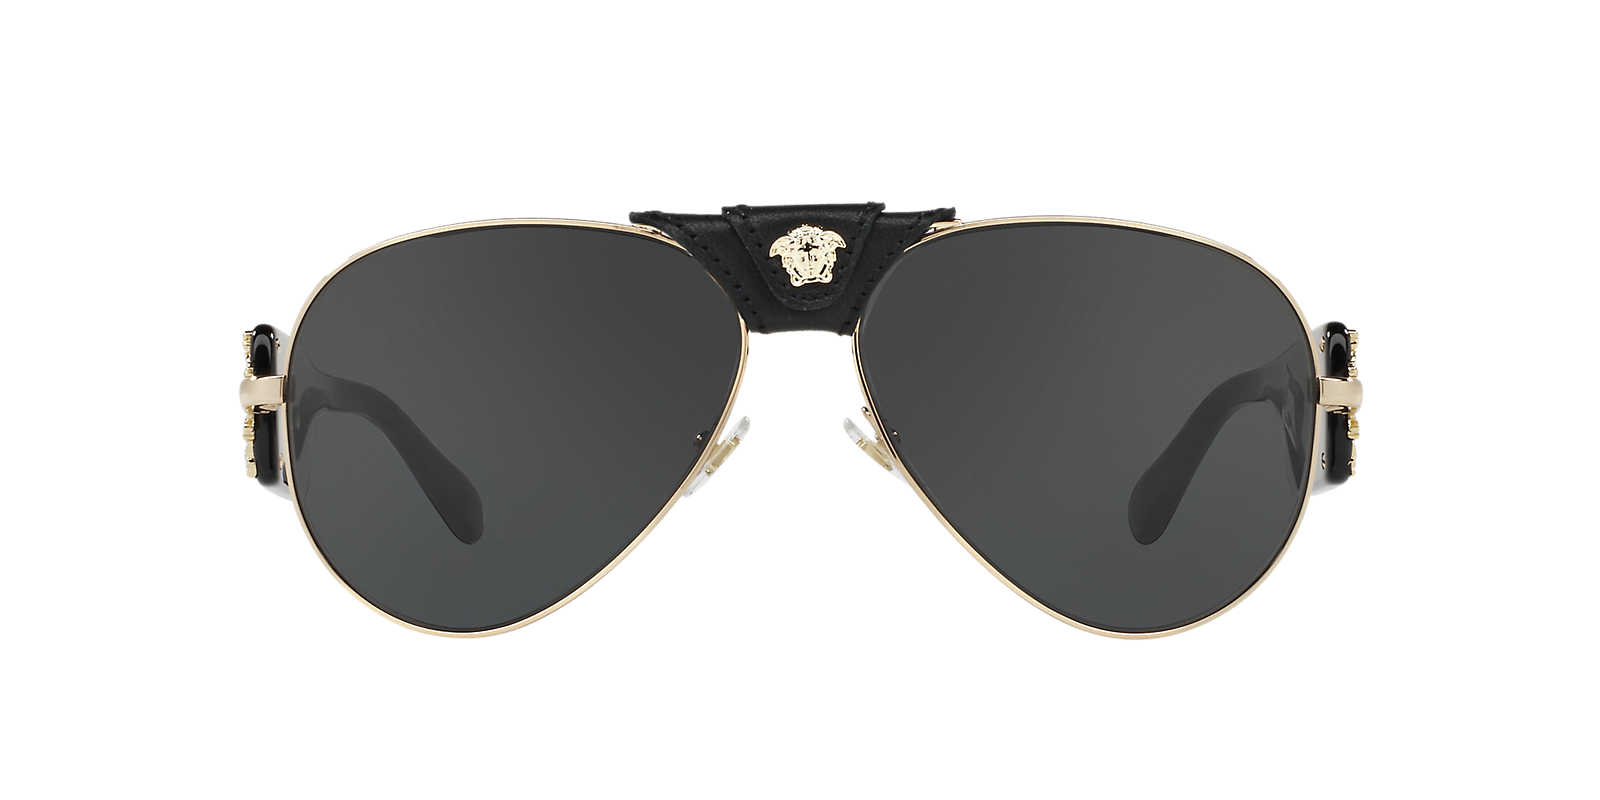 3ab8fded2cd Fake Versace Sunglasses Wholesale